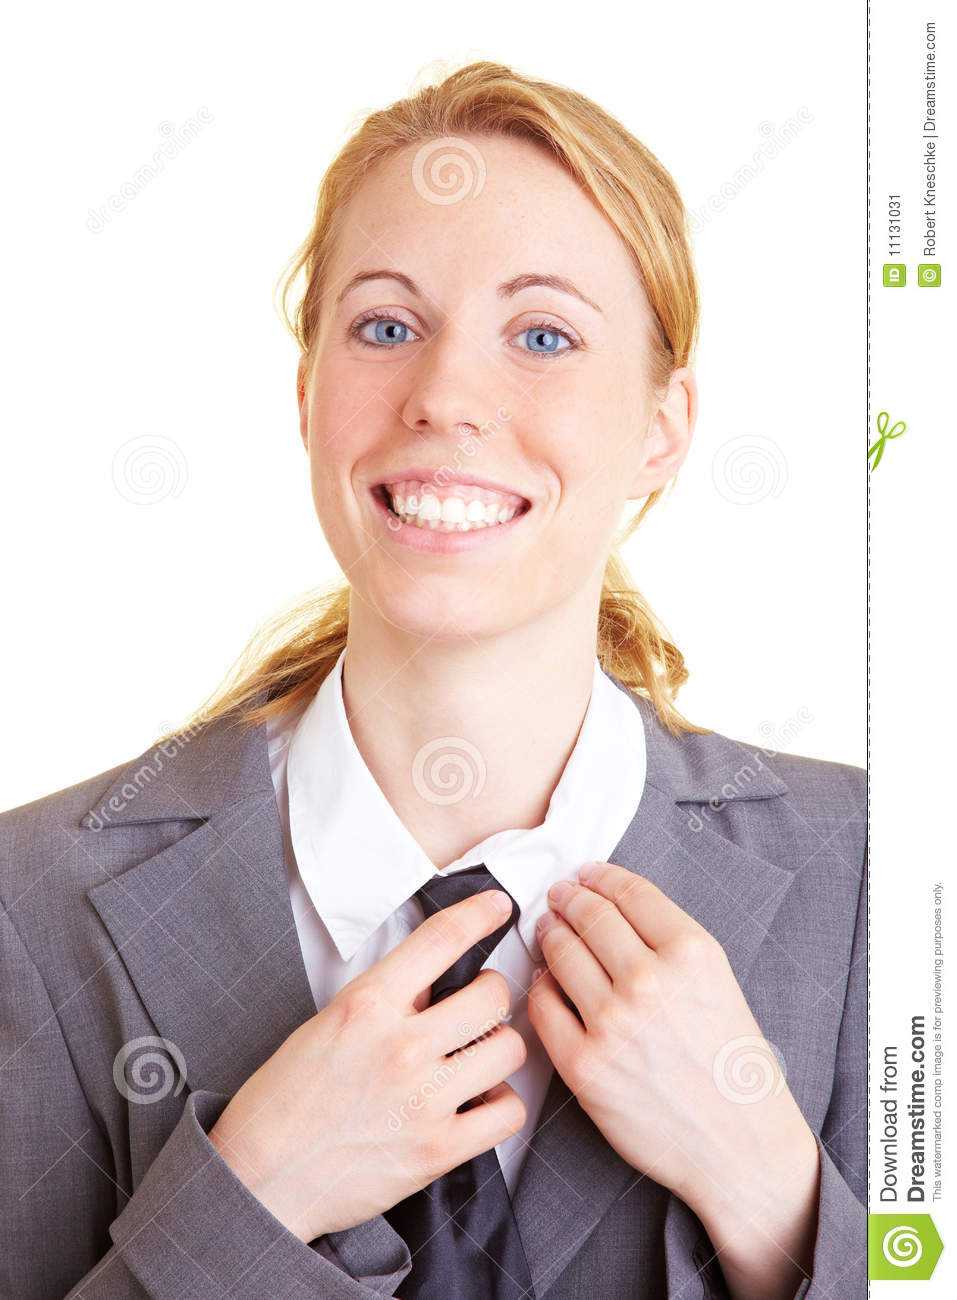 Smiling with a tie